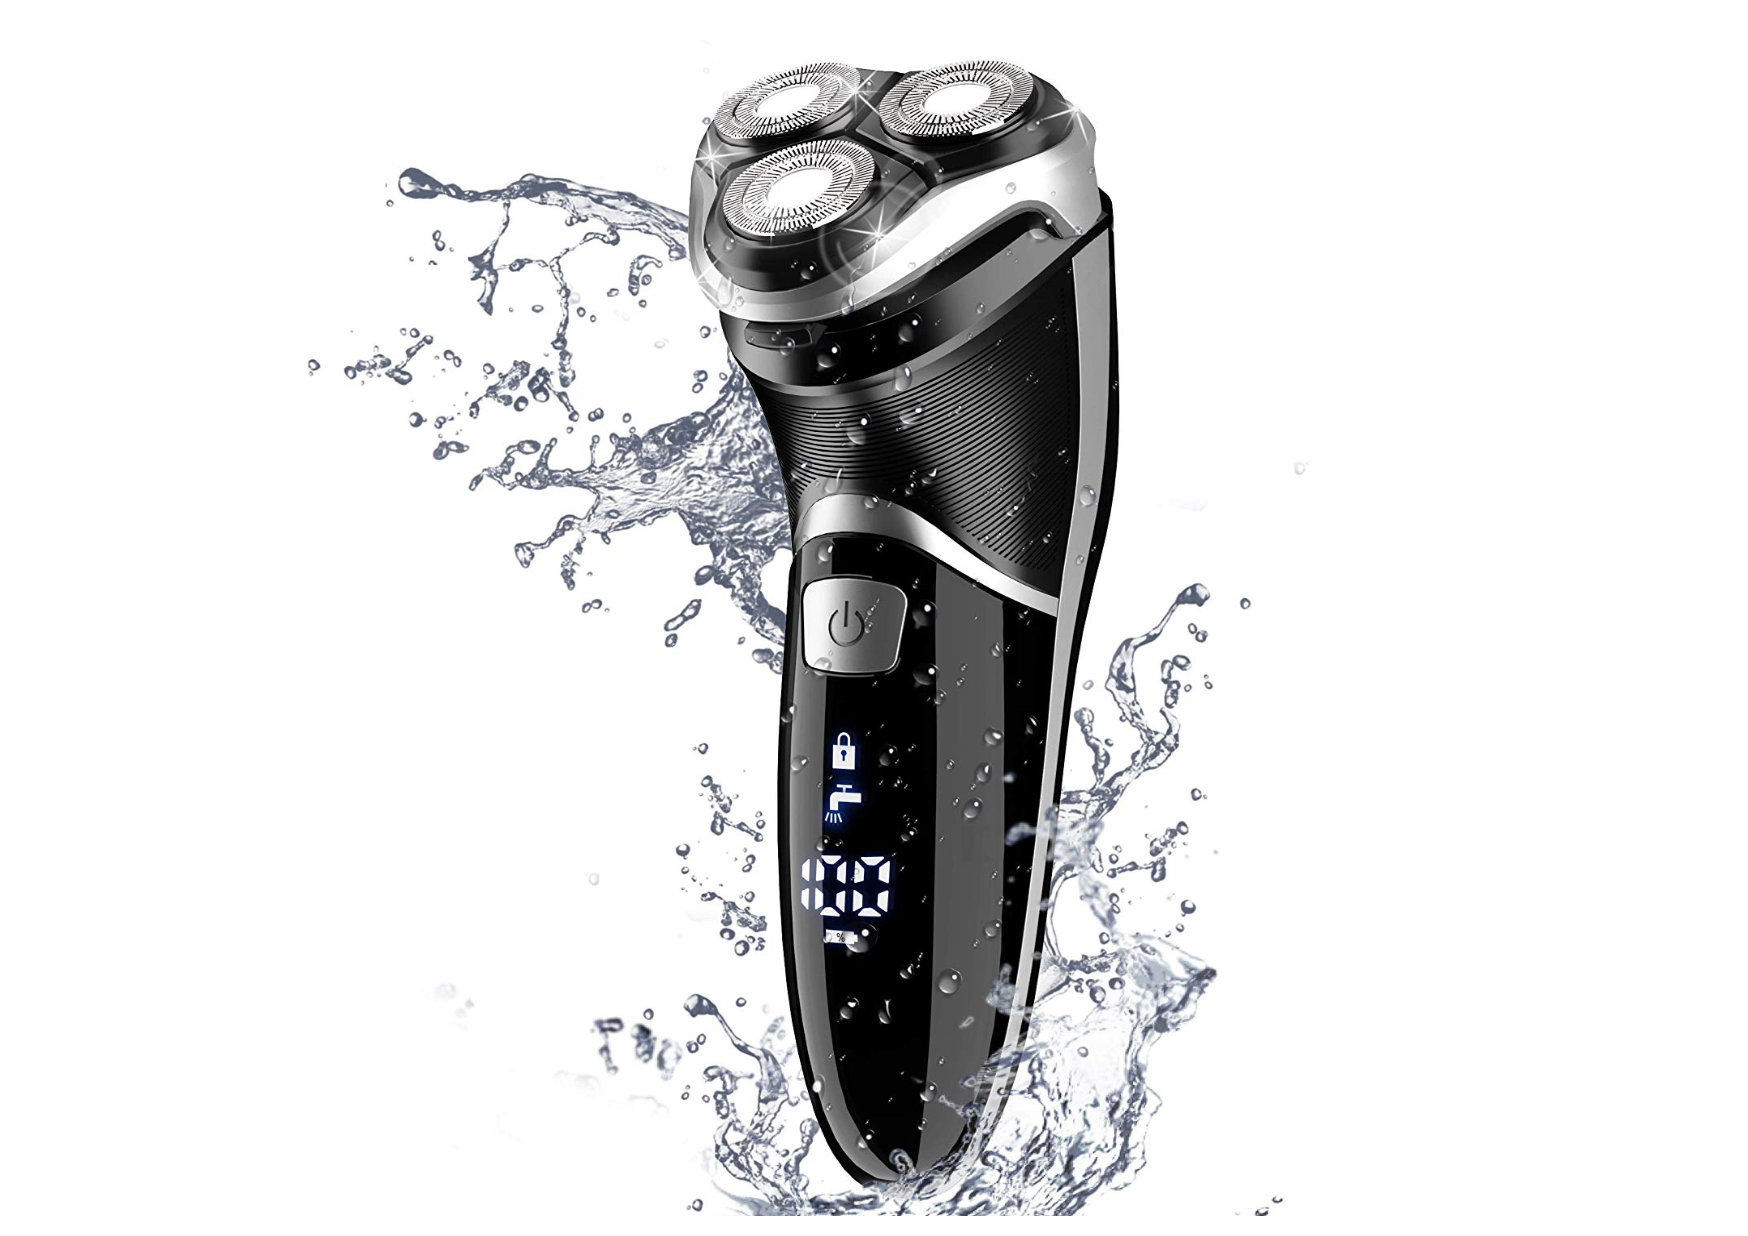 Top 10 Best Electric Shavers of 2020 Review